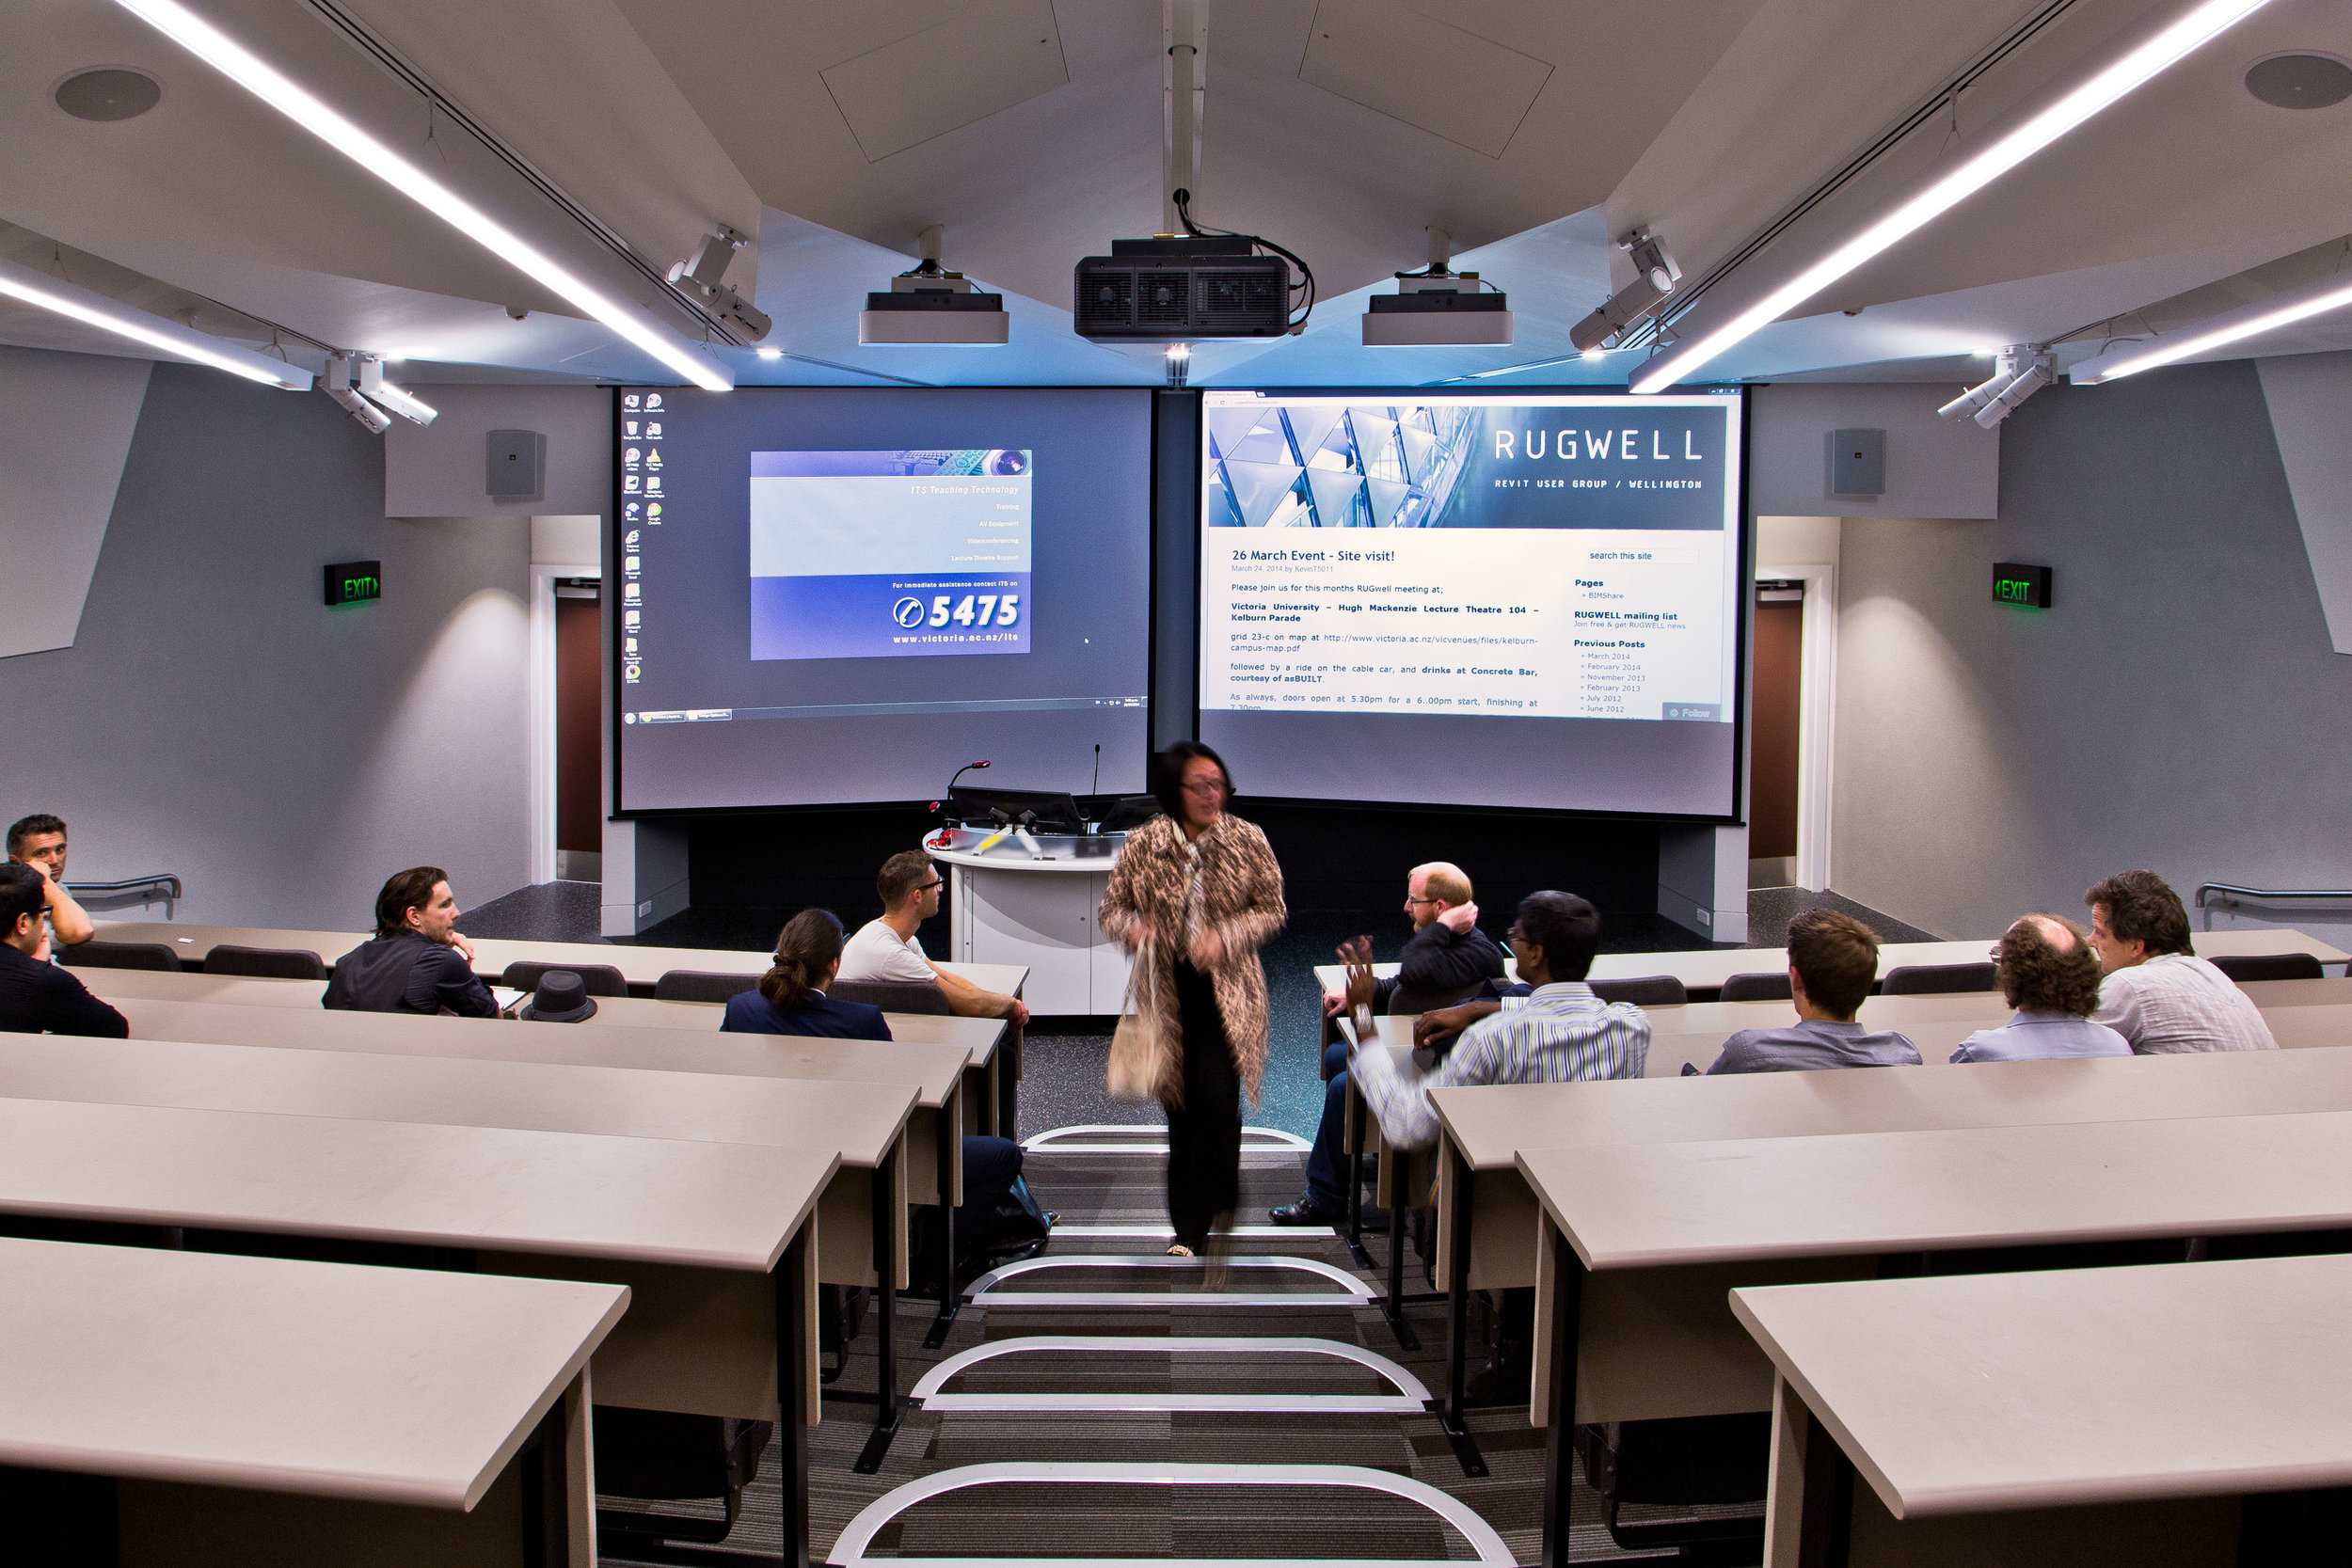 Hugh Mackenzie Lecture Theatres   S&T updated a number of lecture theatres at Victoria University to suit today's modern technology. S&T's knowledge of theatrical requirements extended the capabilities of each learning environment.